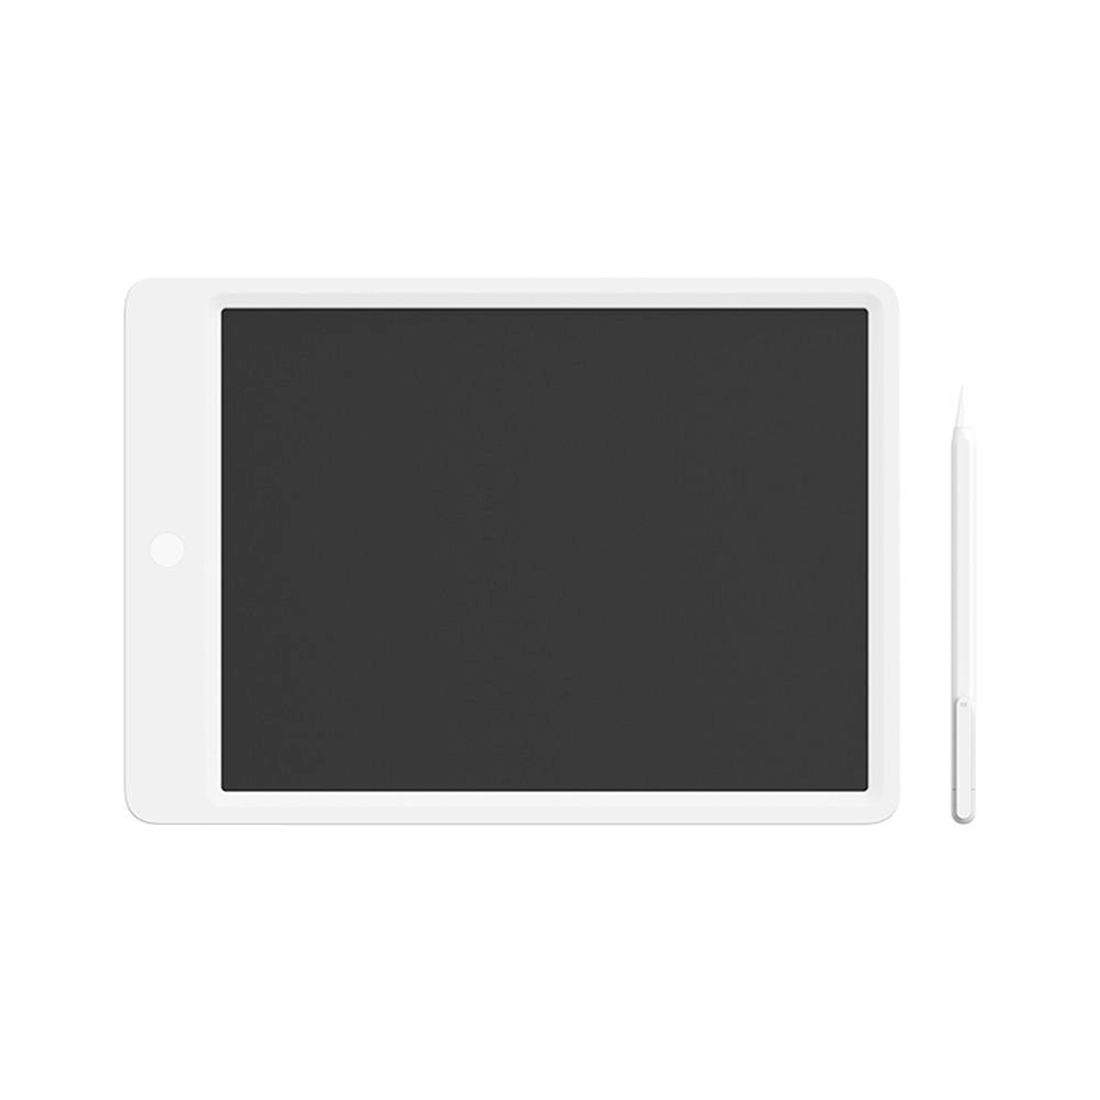 Цифровая доска Xiaomi Mijia LCD Blackboard 13 inches